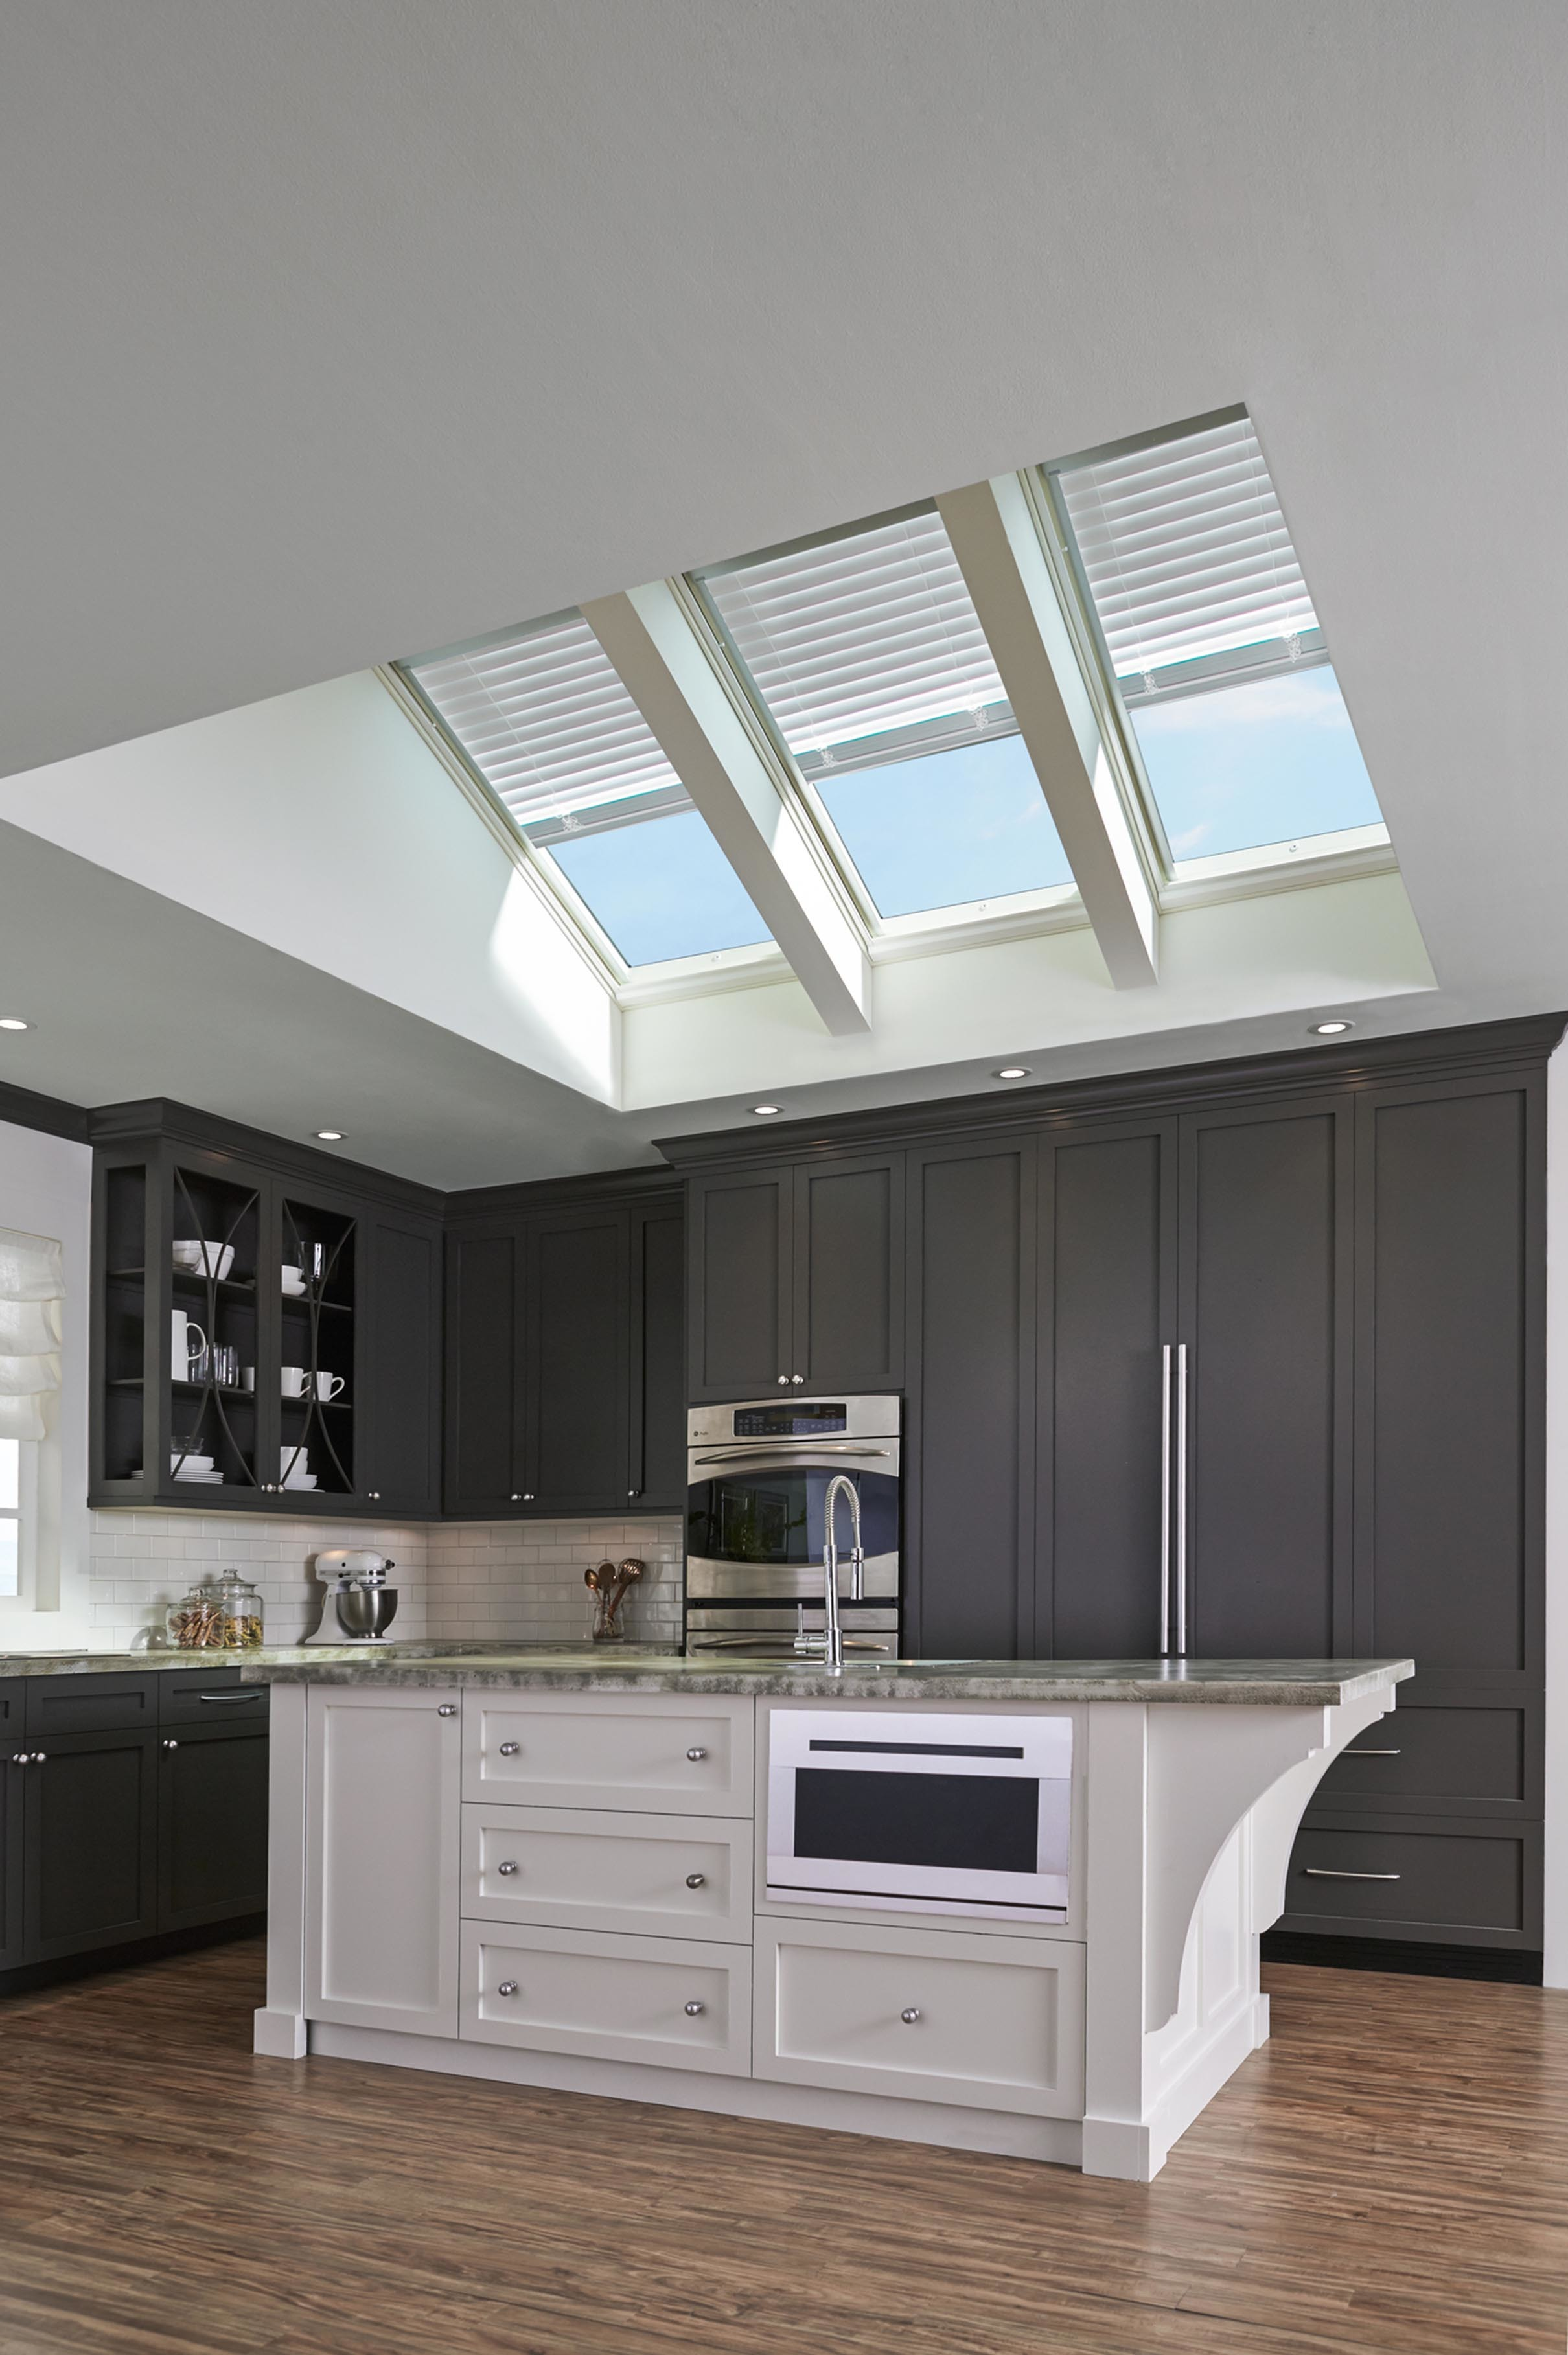 Kitchen skylights with venetian blinds